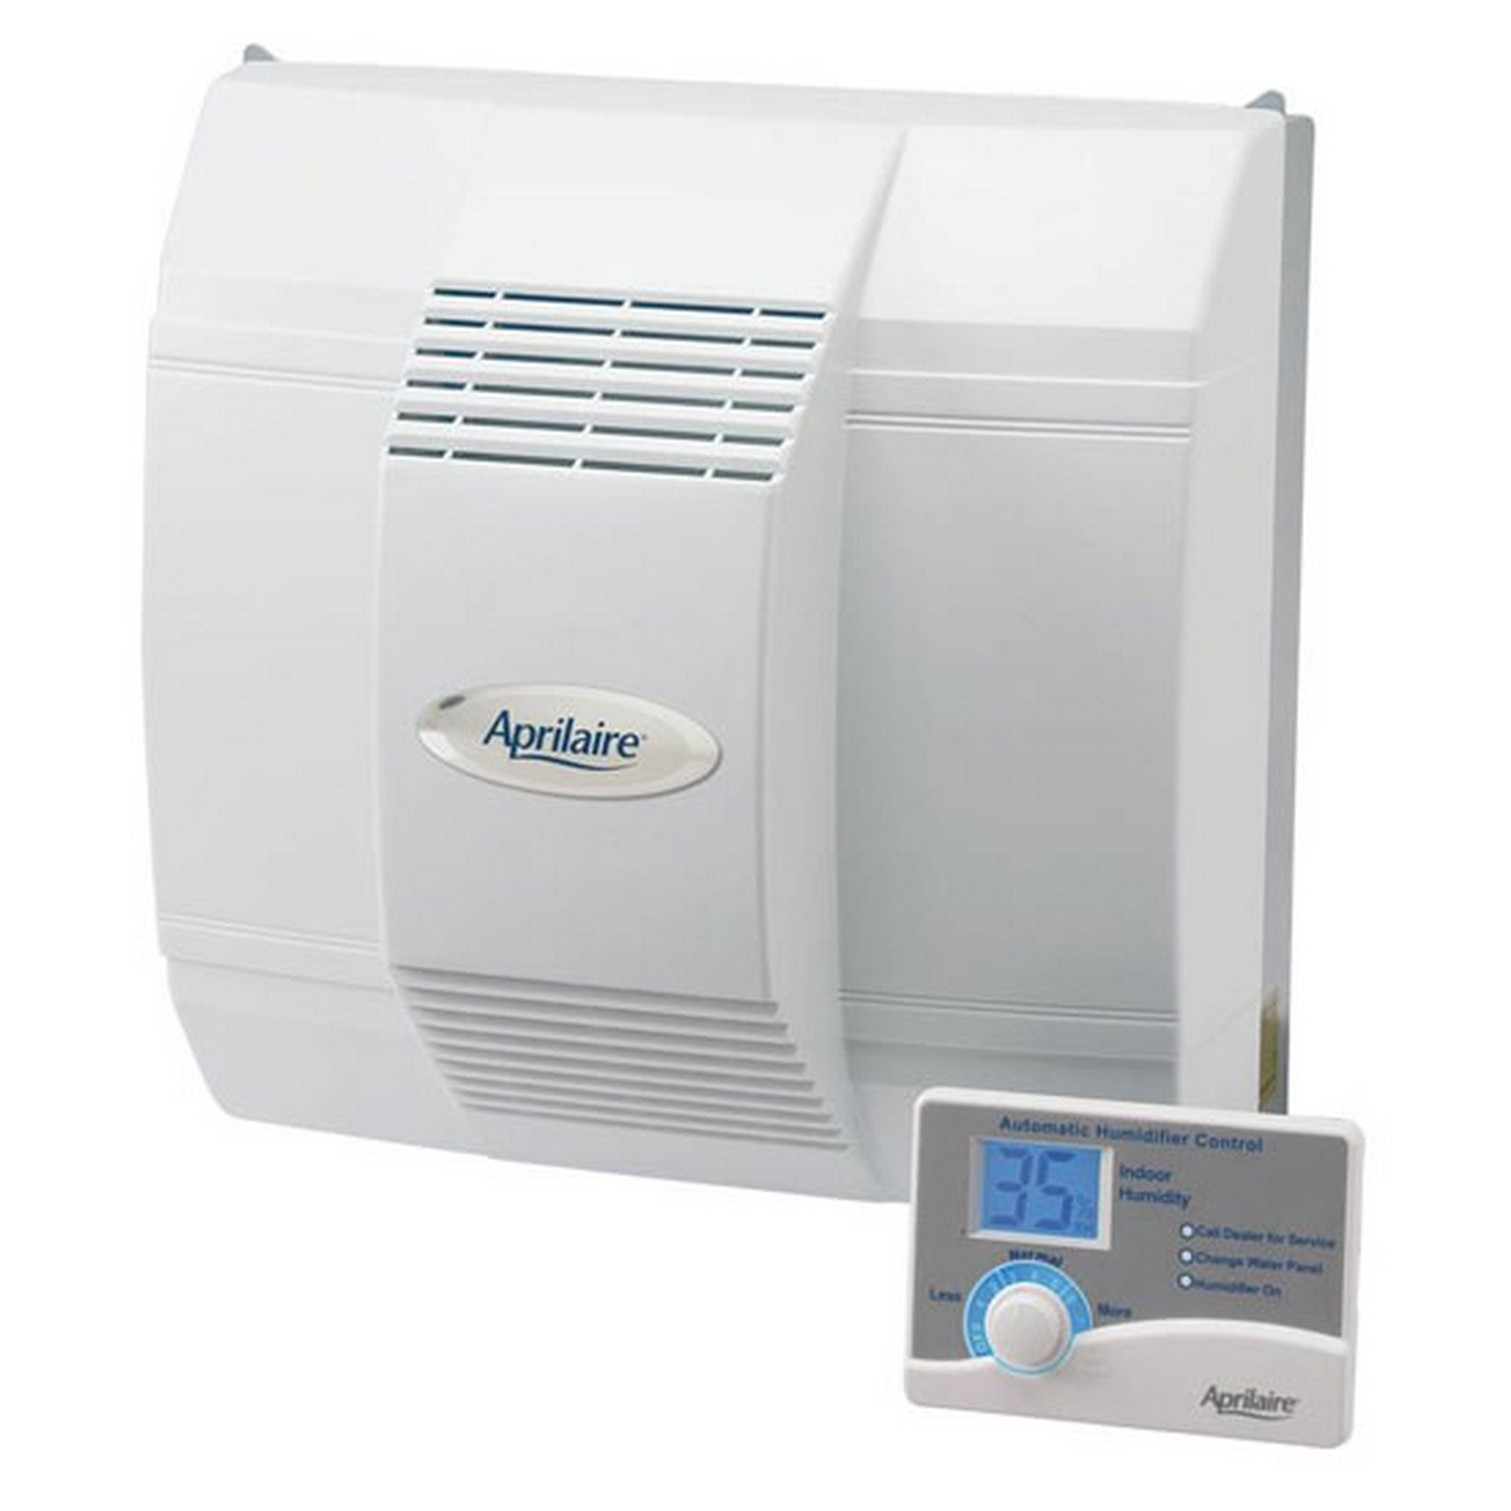 aprilaire 700 automatic power humidifier the aprilaire 700 humidifier  #376494